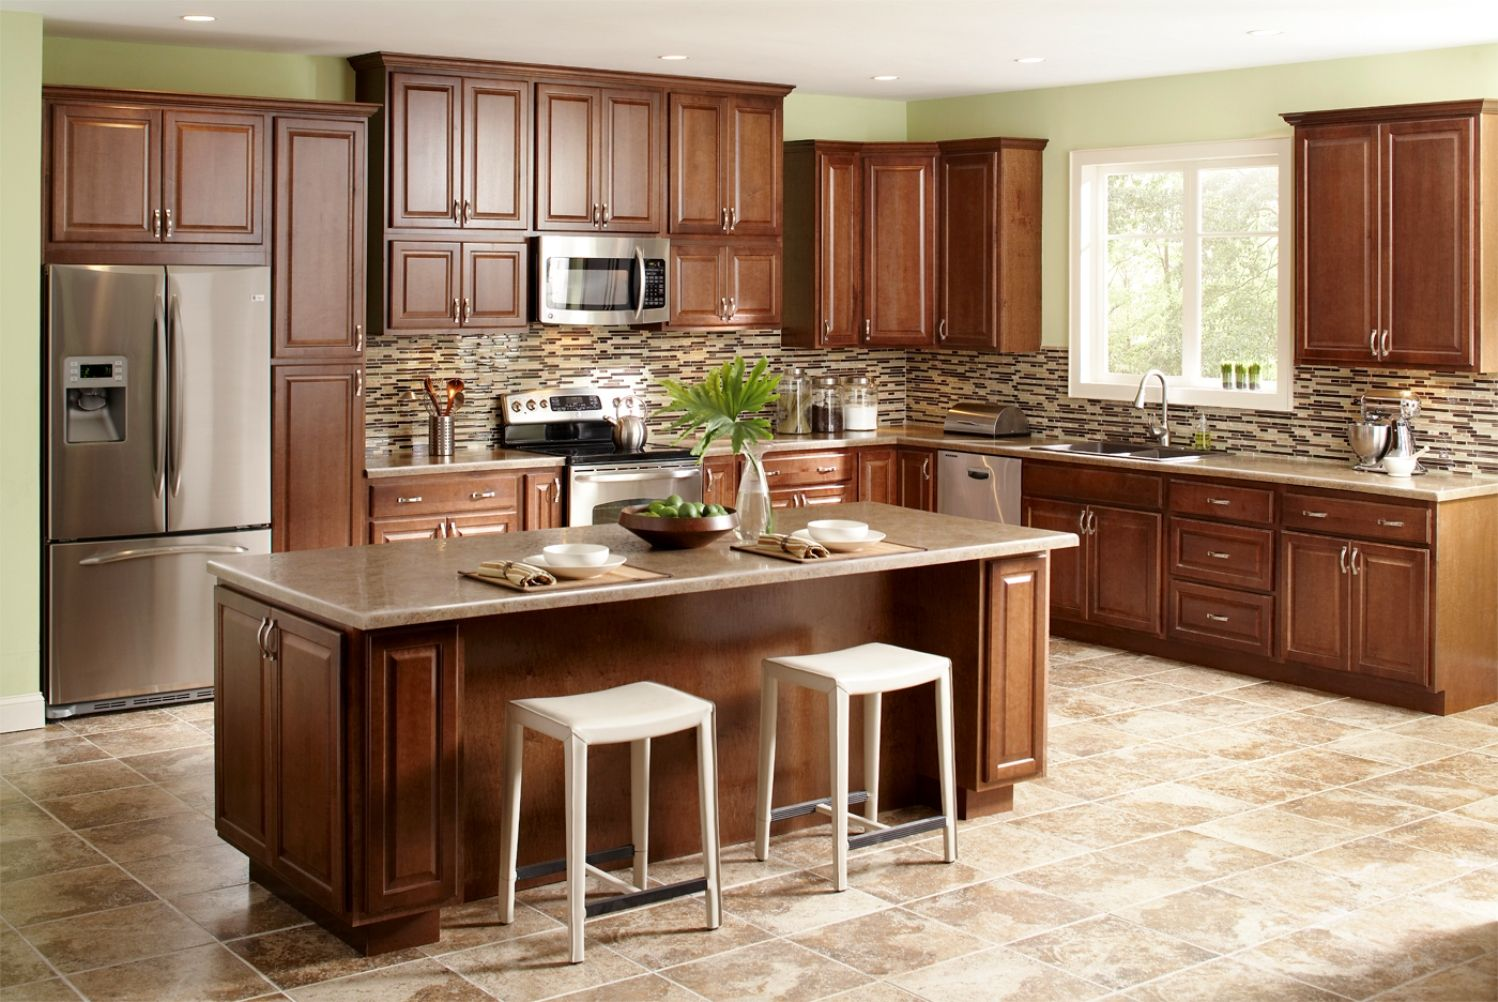 Traditional Classic Neutral Color Kitchen Design American Style With Stands Free Rectang Kitchen Cabinet Interior Traditional Kitchen Design Building A Kitchen